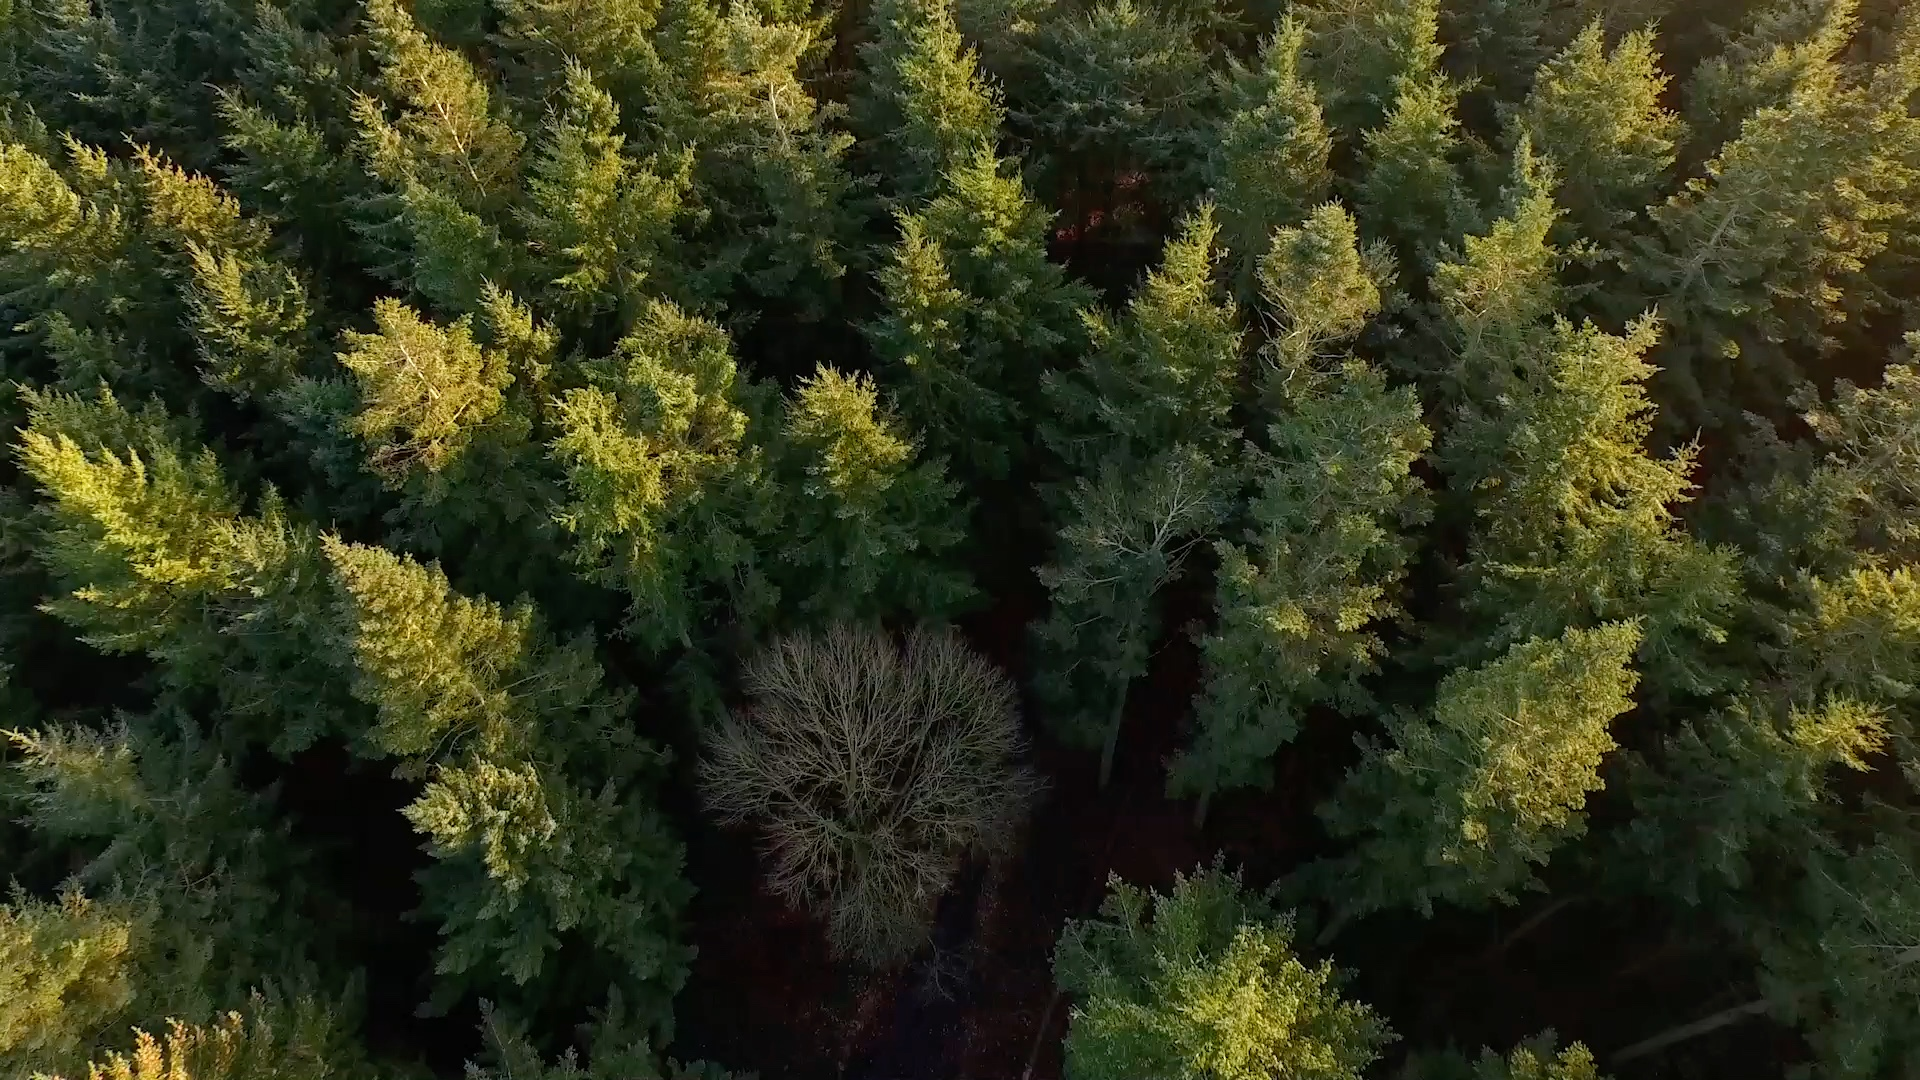 Aerial photo of a large pine forest